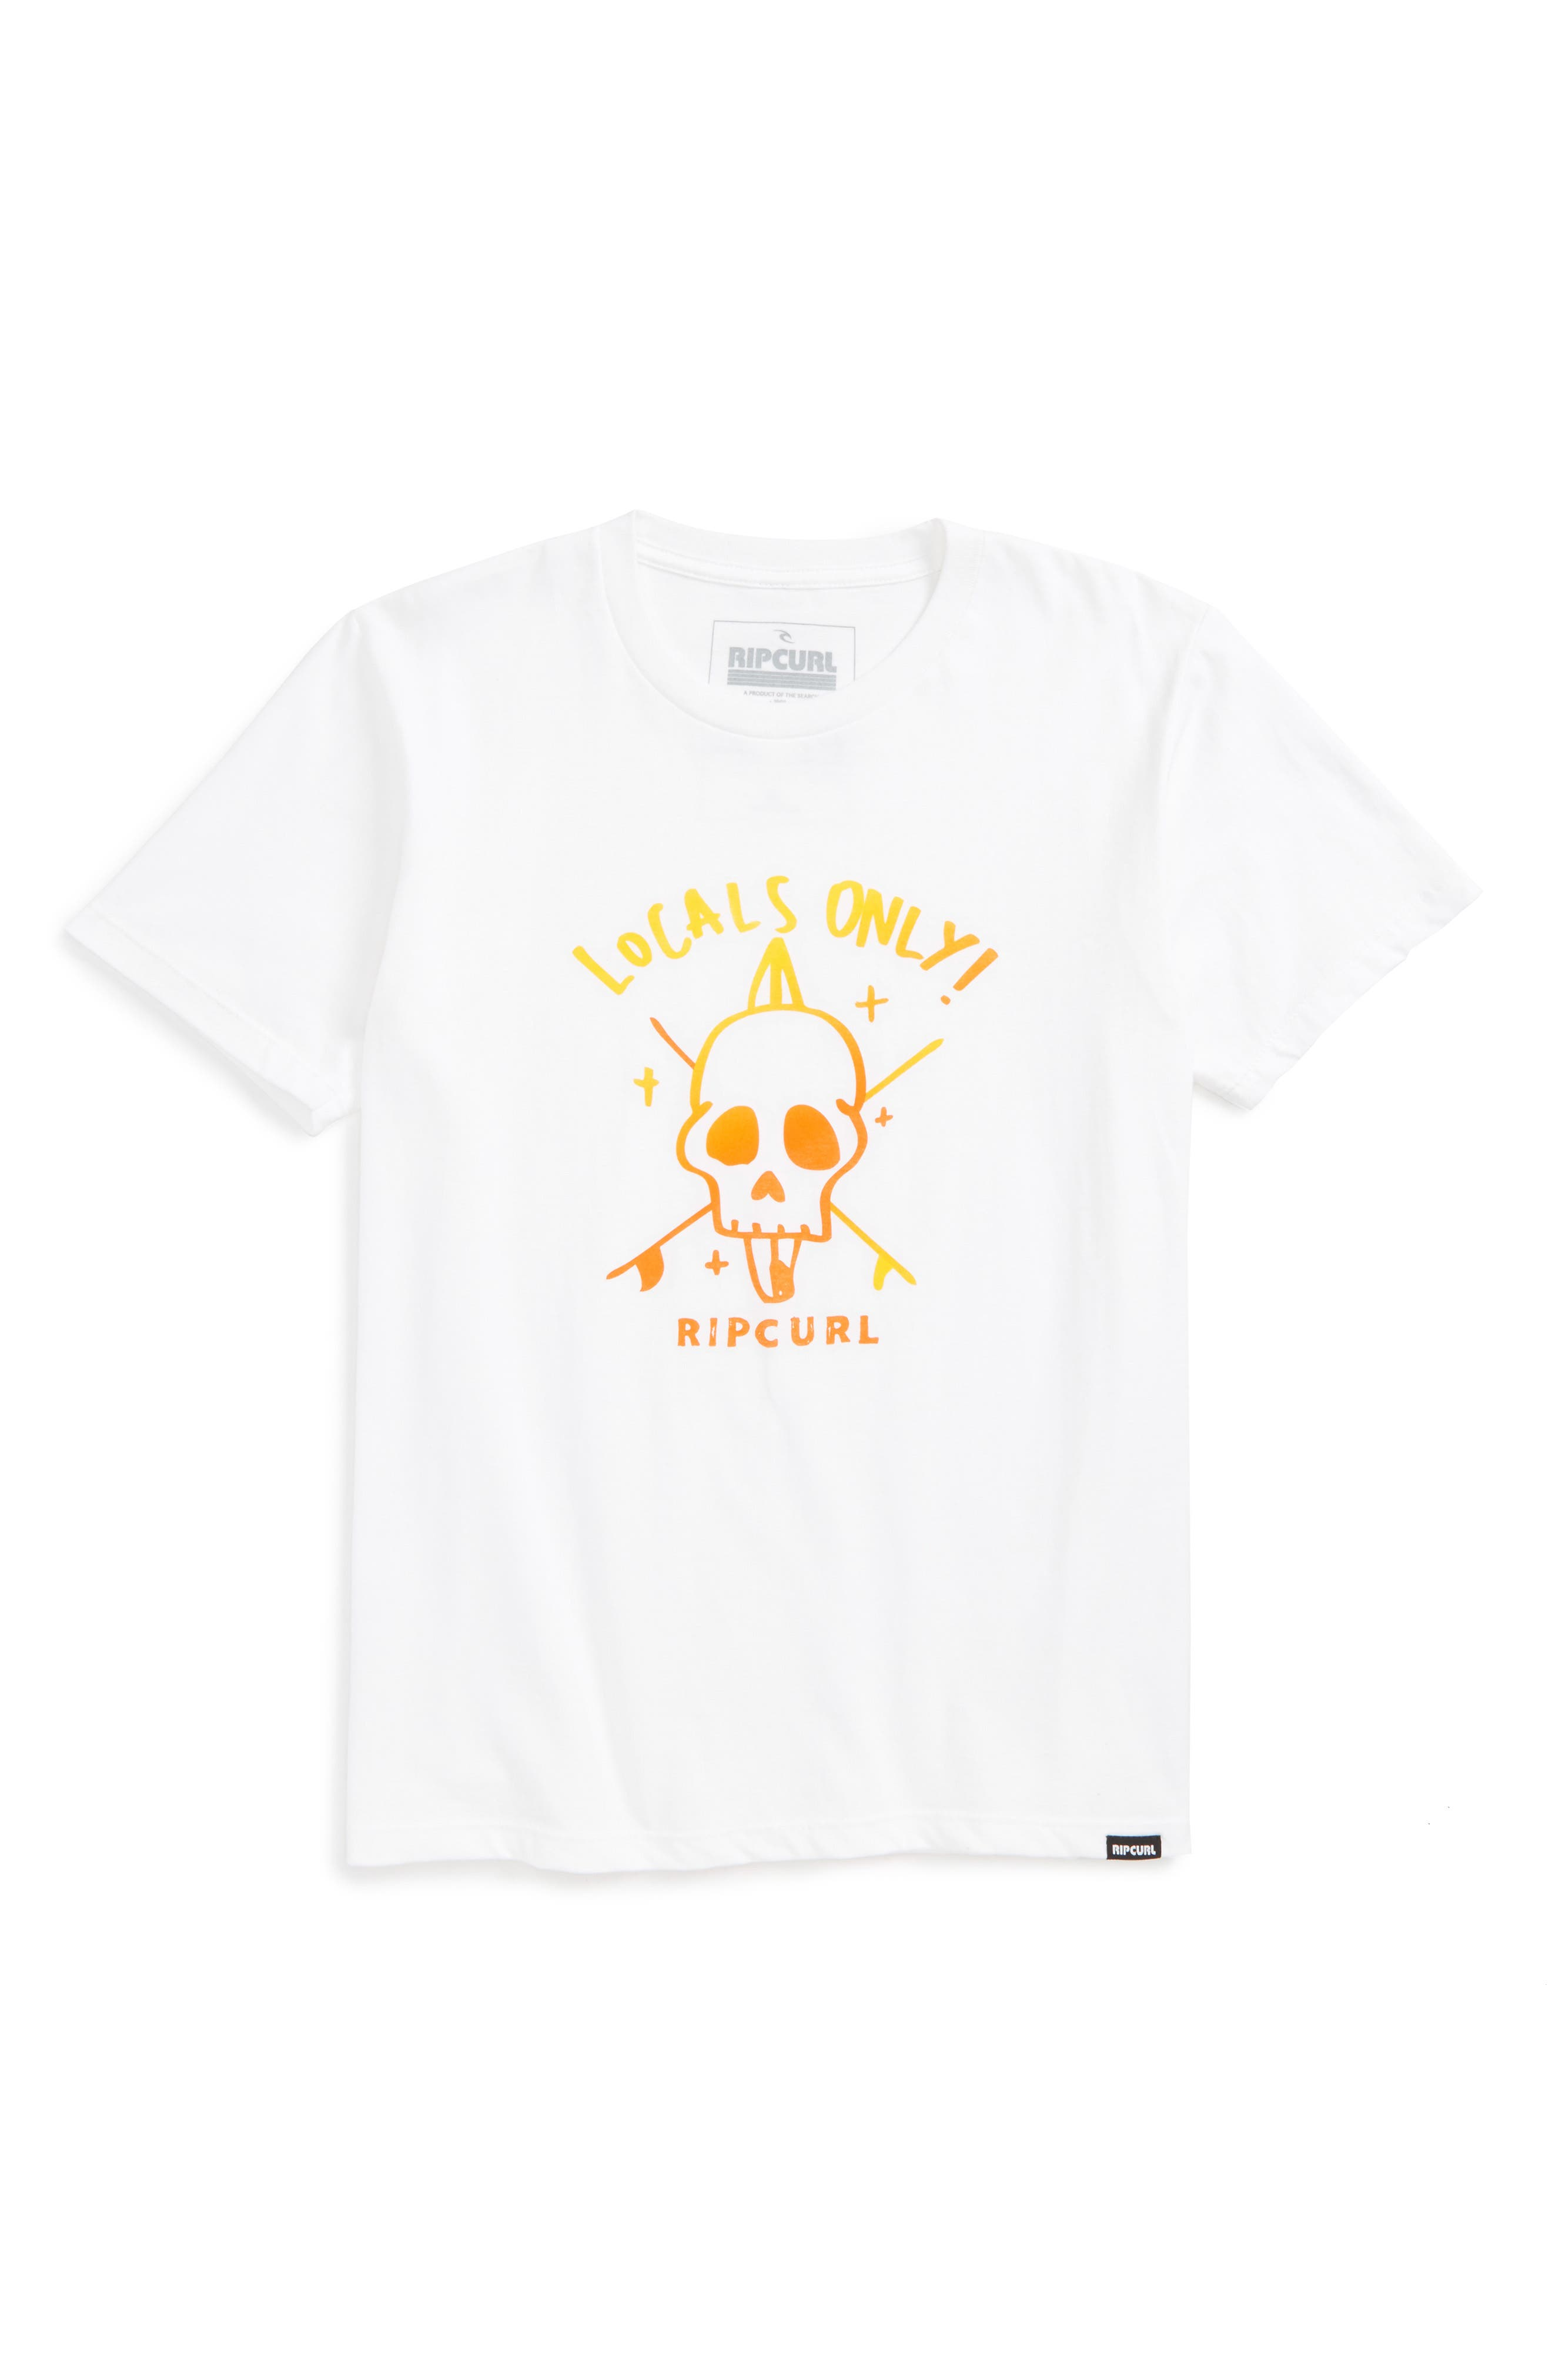 Locals Only Premium Graphic T-Shirt,                         Main,                         color, White